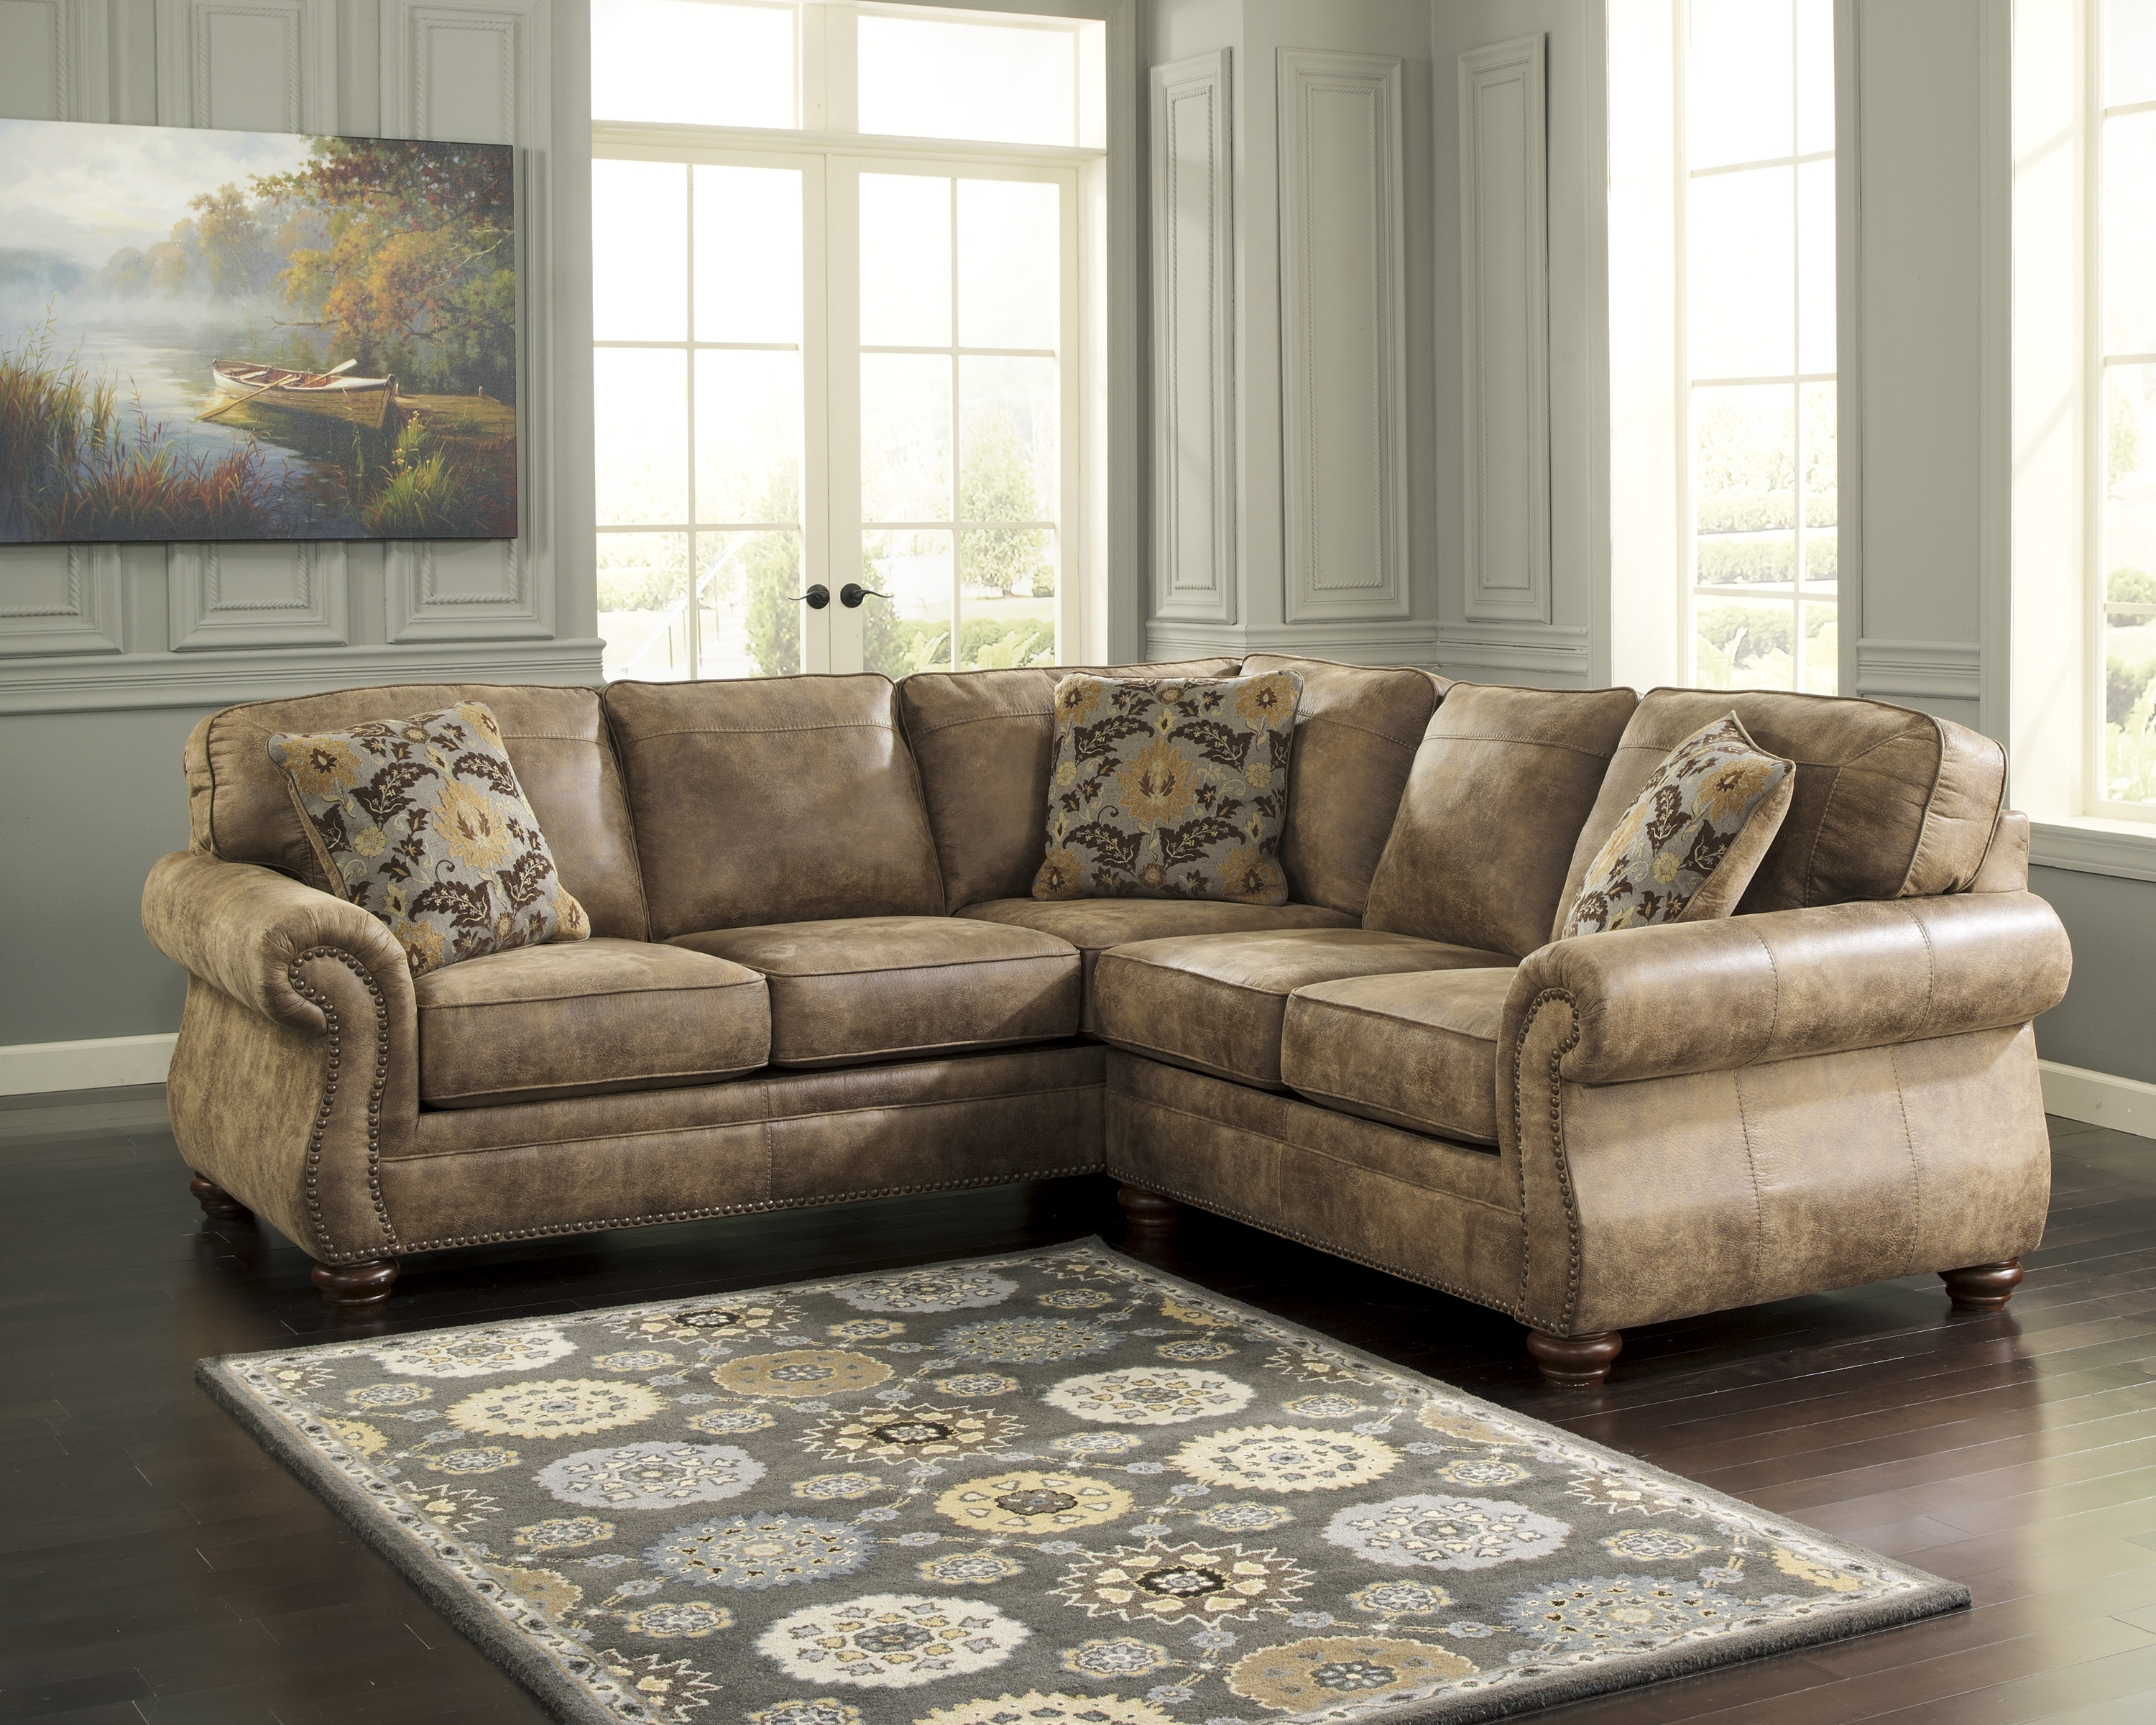 Most Current Sectional Sofas With Nailhead Trim Throughout Ashley Furniture Fabric Sectionals, Ashley Furniture Sofa Sleepers (View 14 of 15)